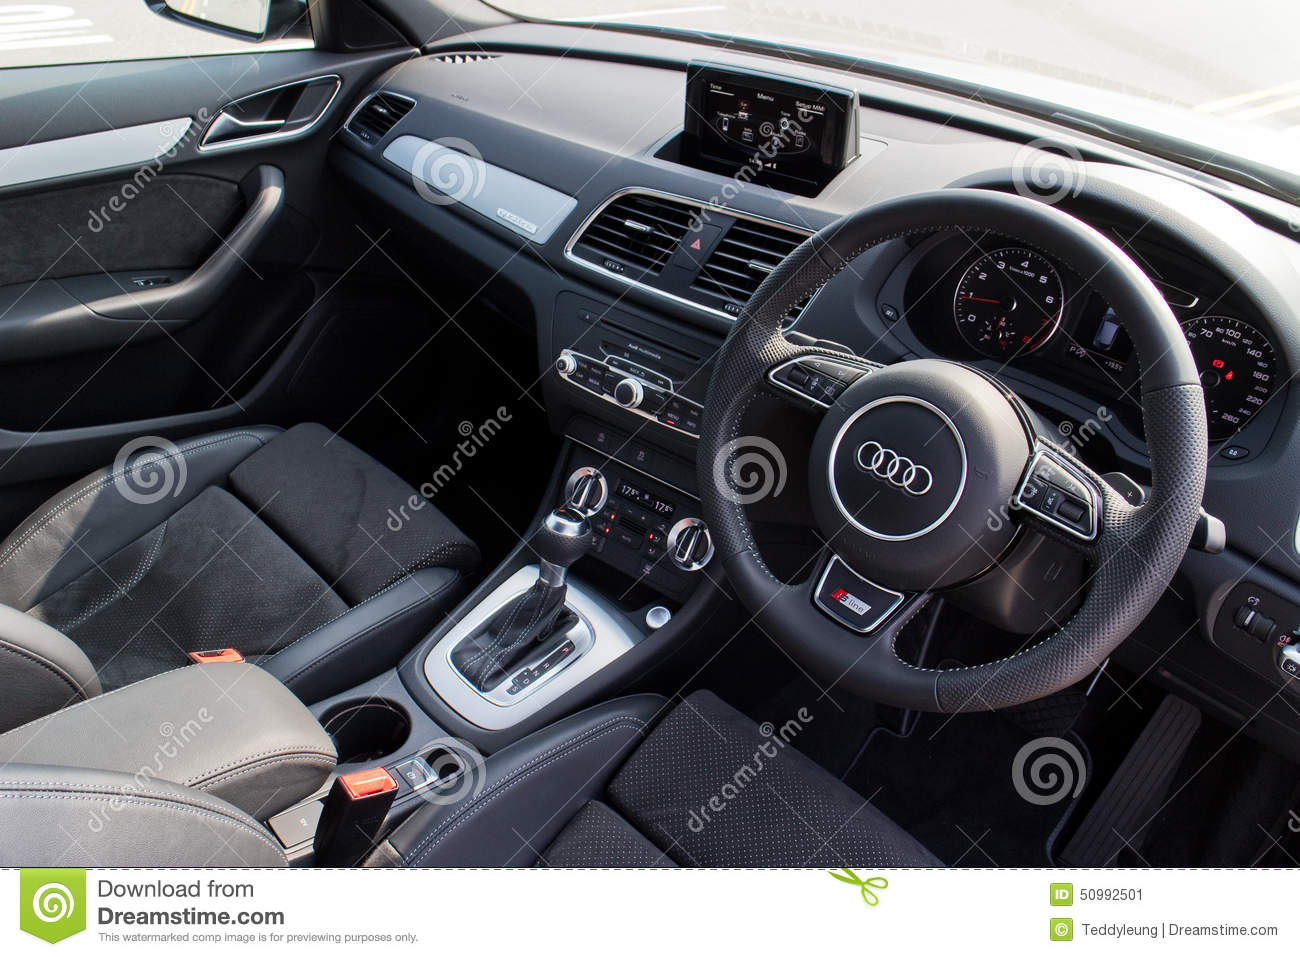 audi q3 black edition 2015 interior editorial photo image 50992501. Black Bedroom Furniture Sets. Home Design Ideas